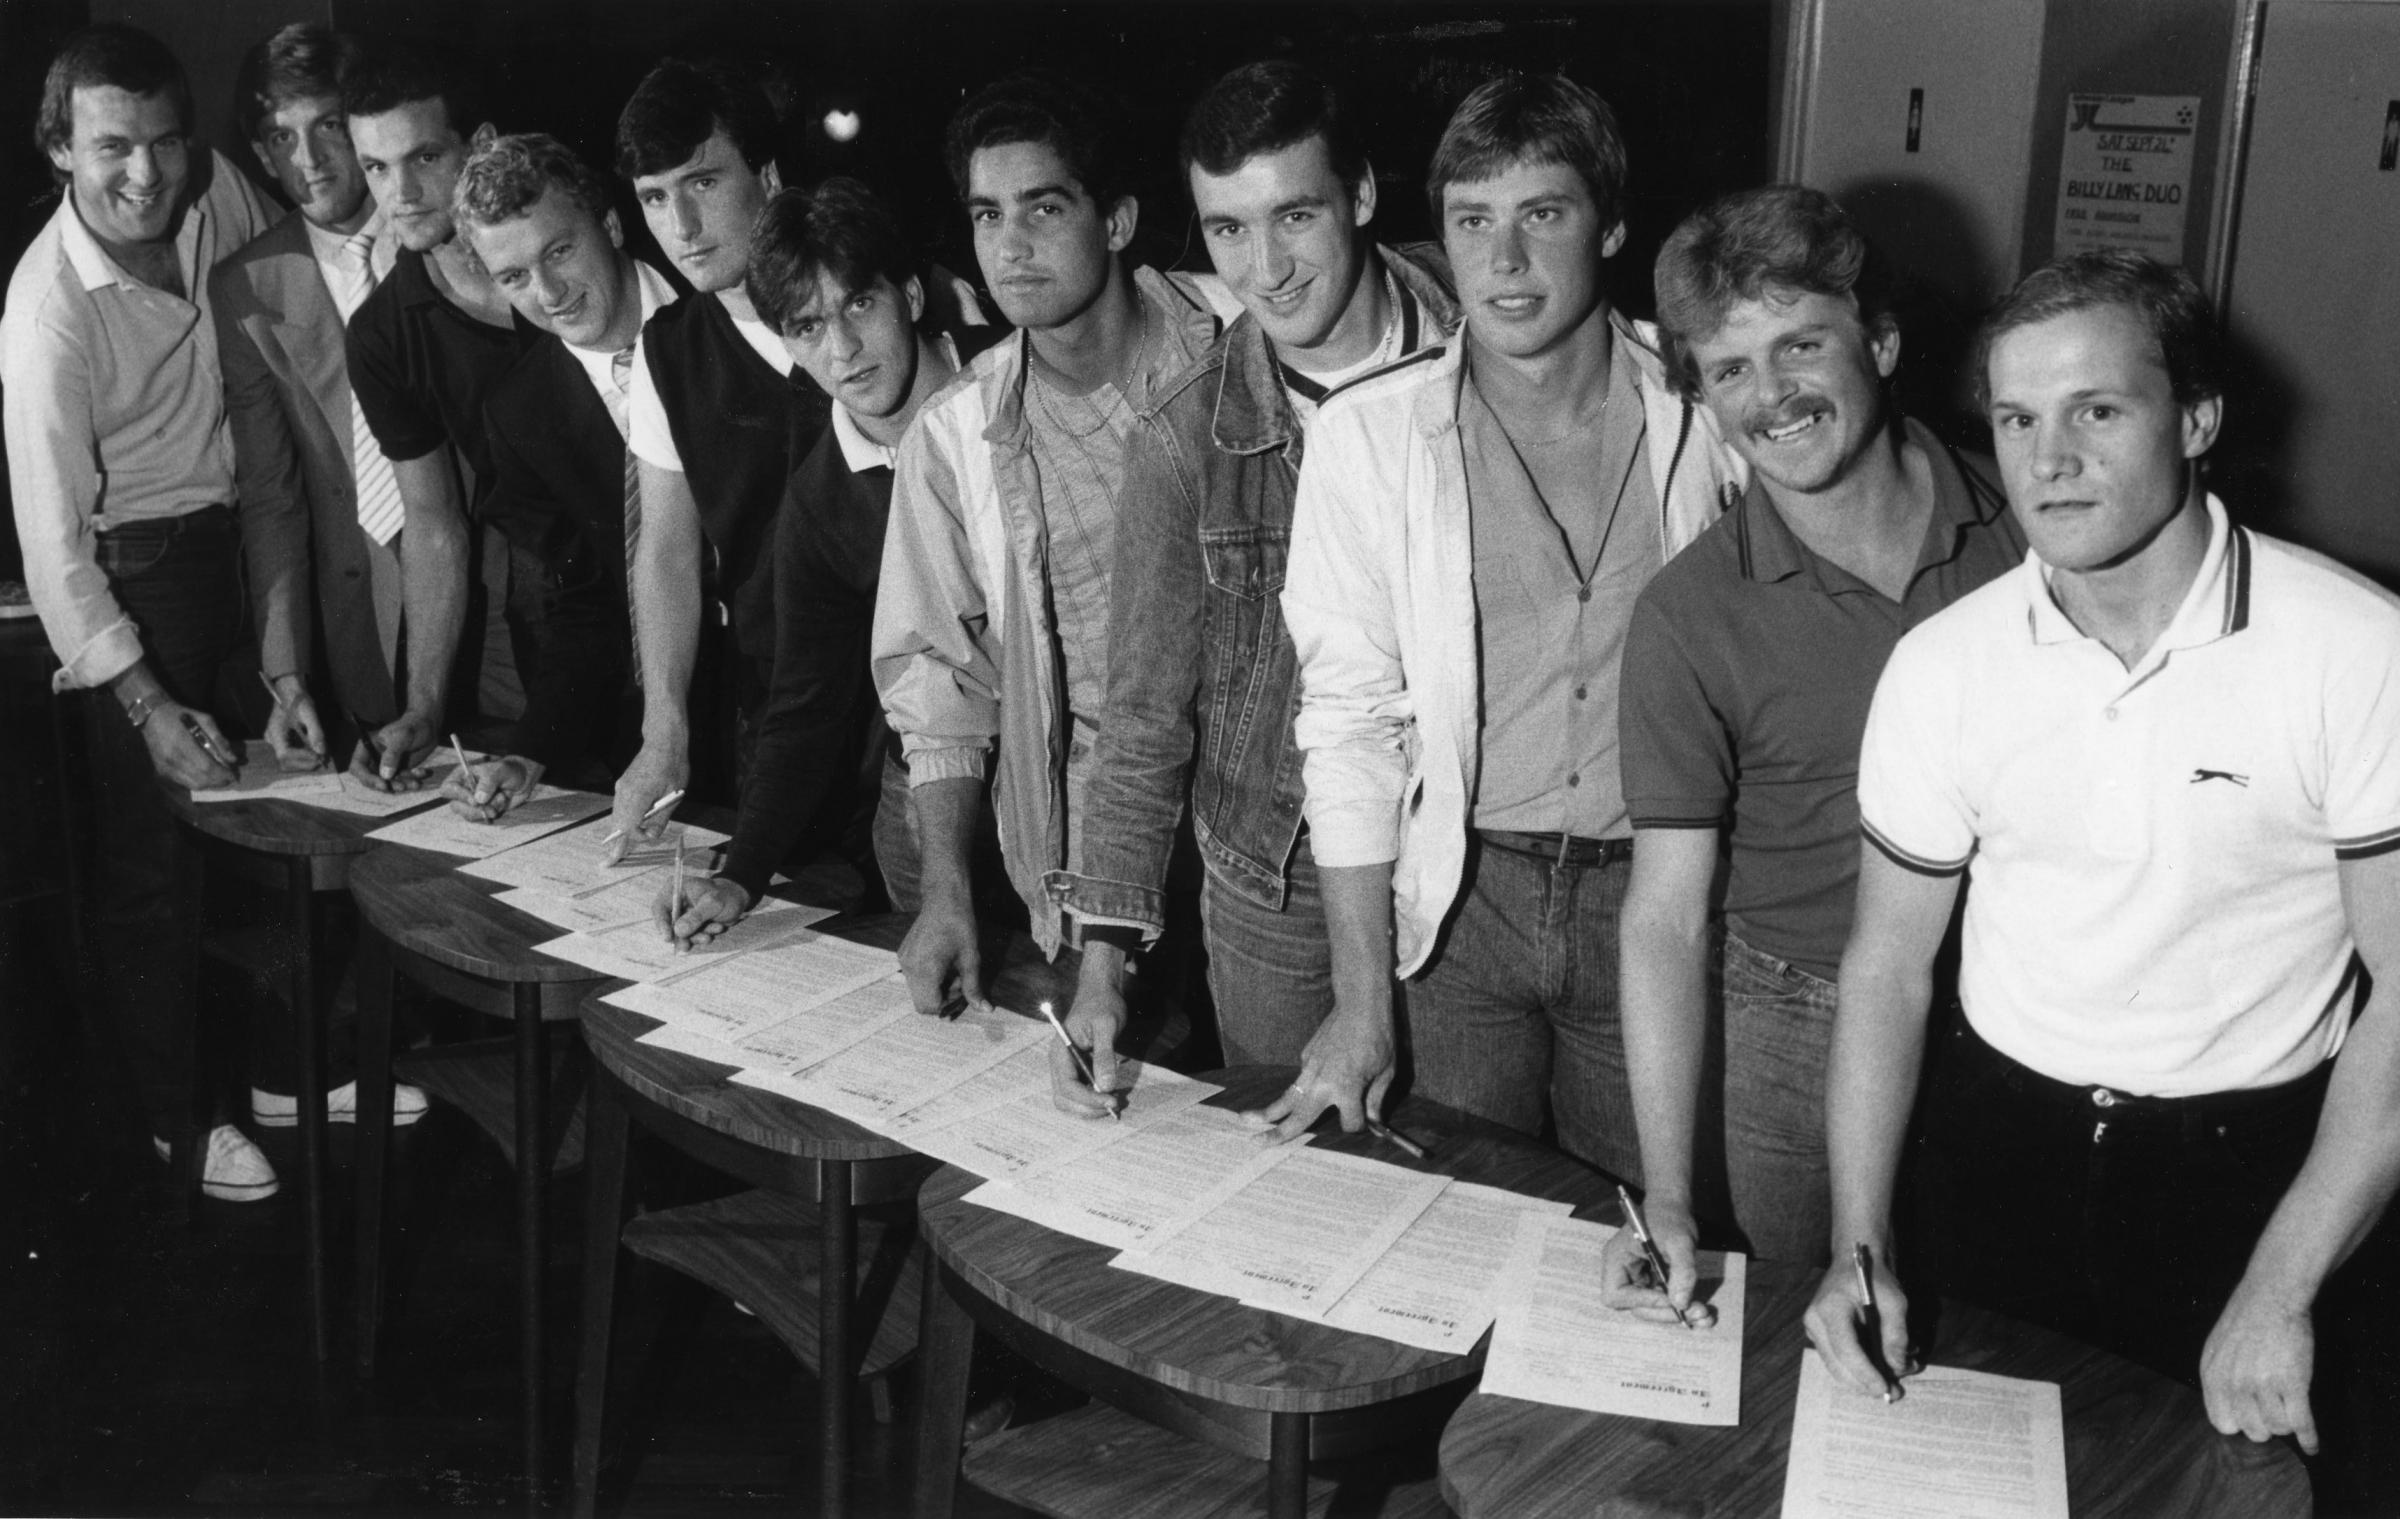 Some of Worthing's class of 1982 sign autographs. From left Geoff Raynsford, Mike Cornwell, Trevor Dove, Bruce Aitken, Danny Deans, Jimmy Quigg, Kevin Foreman, Paul Lelliott, Mick Edmonds, Russell Cox and Martin Cox